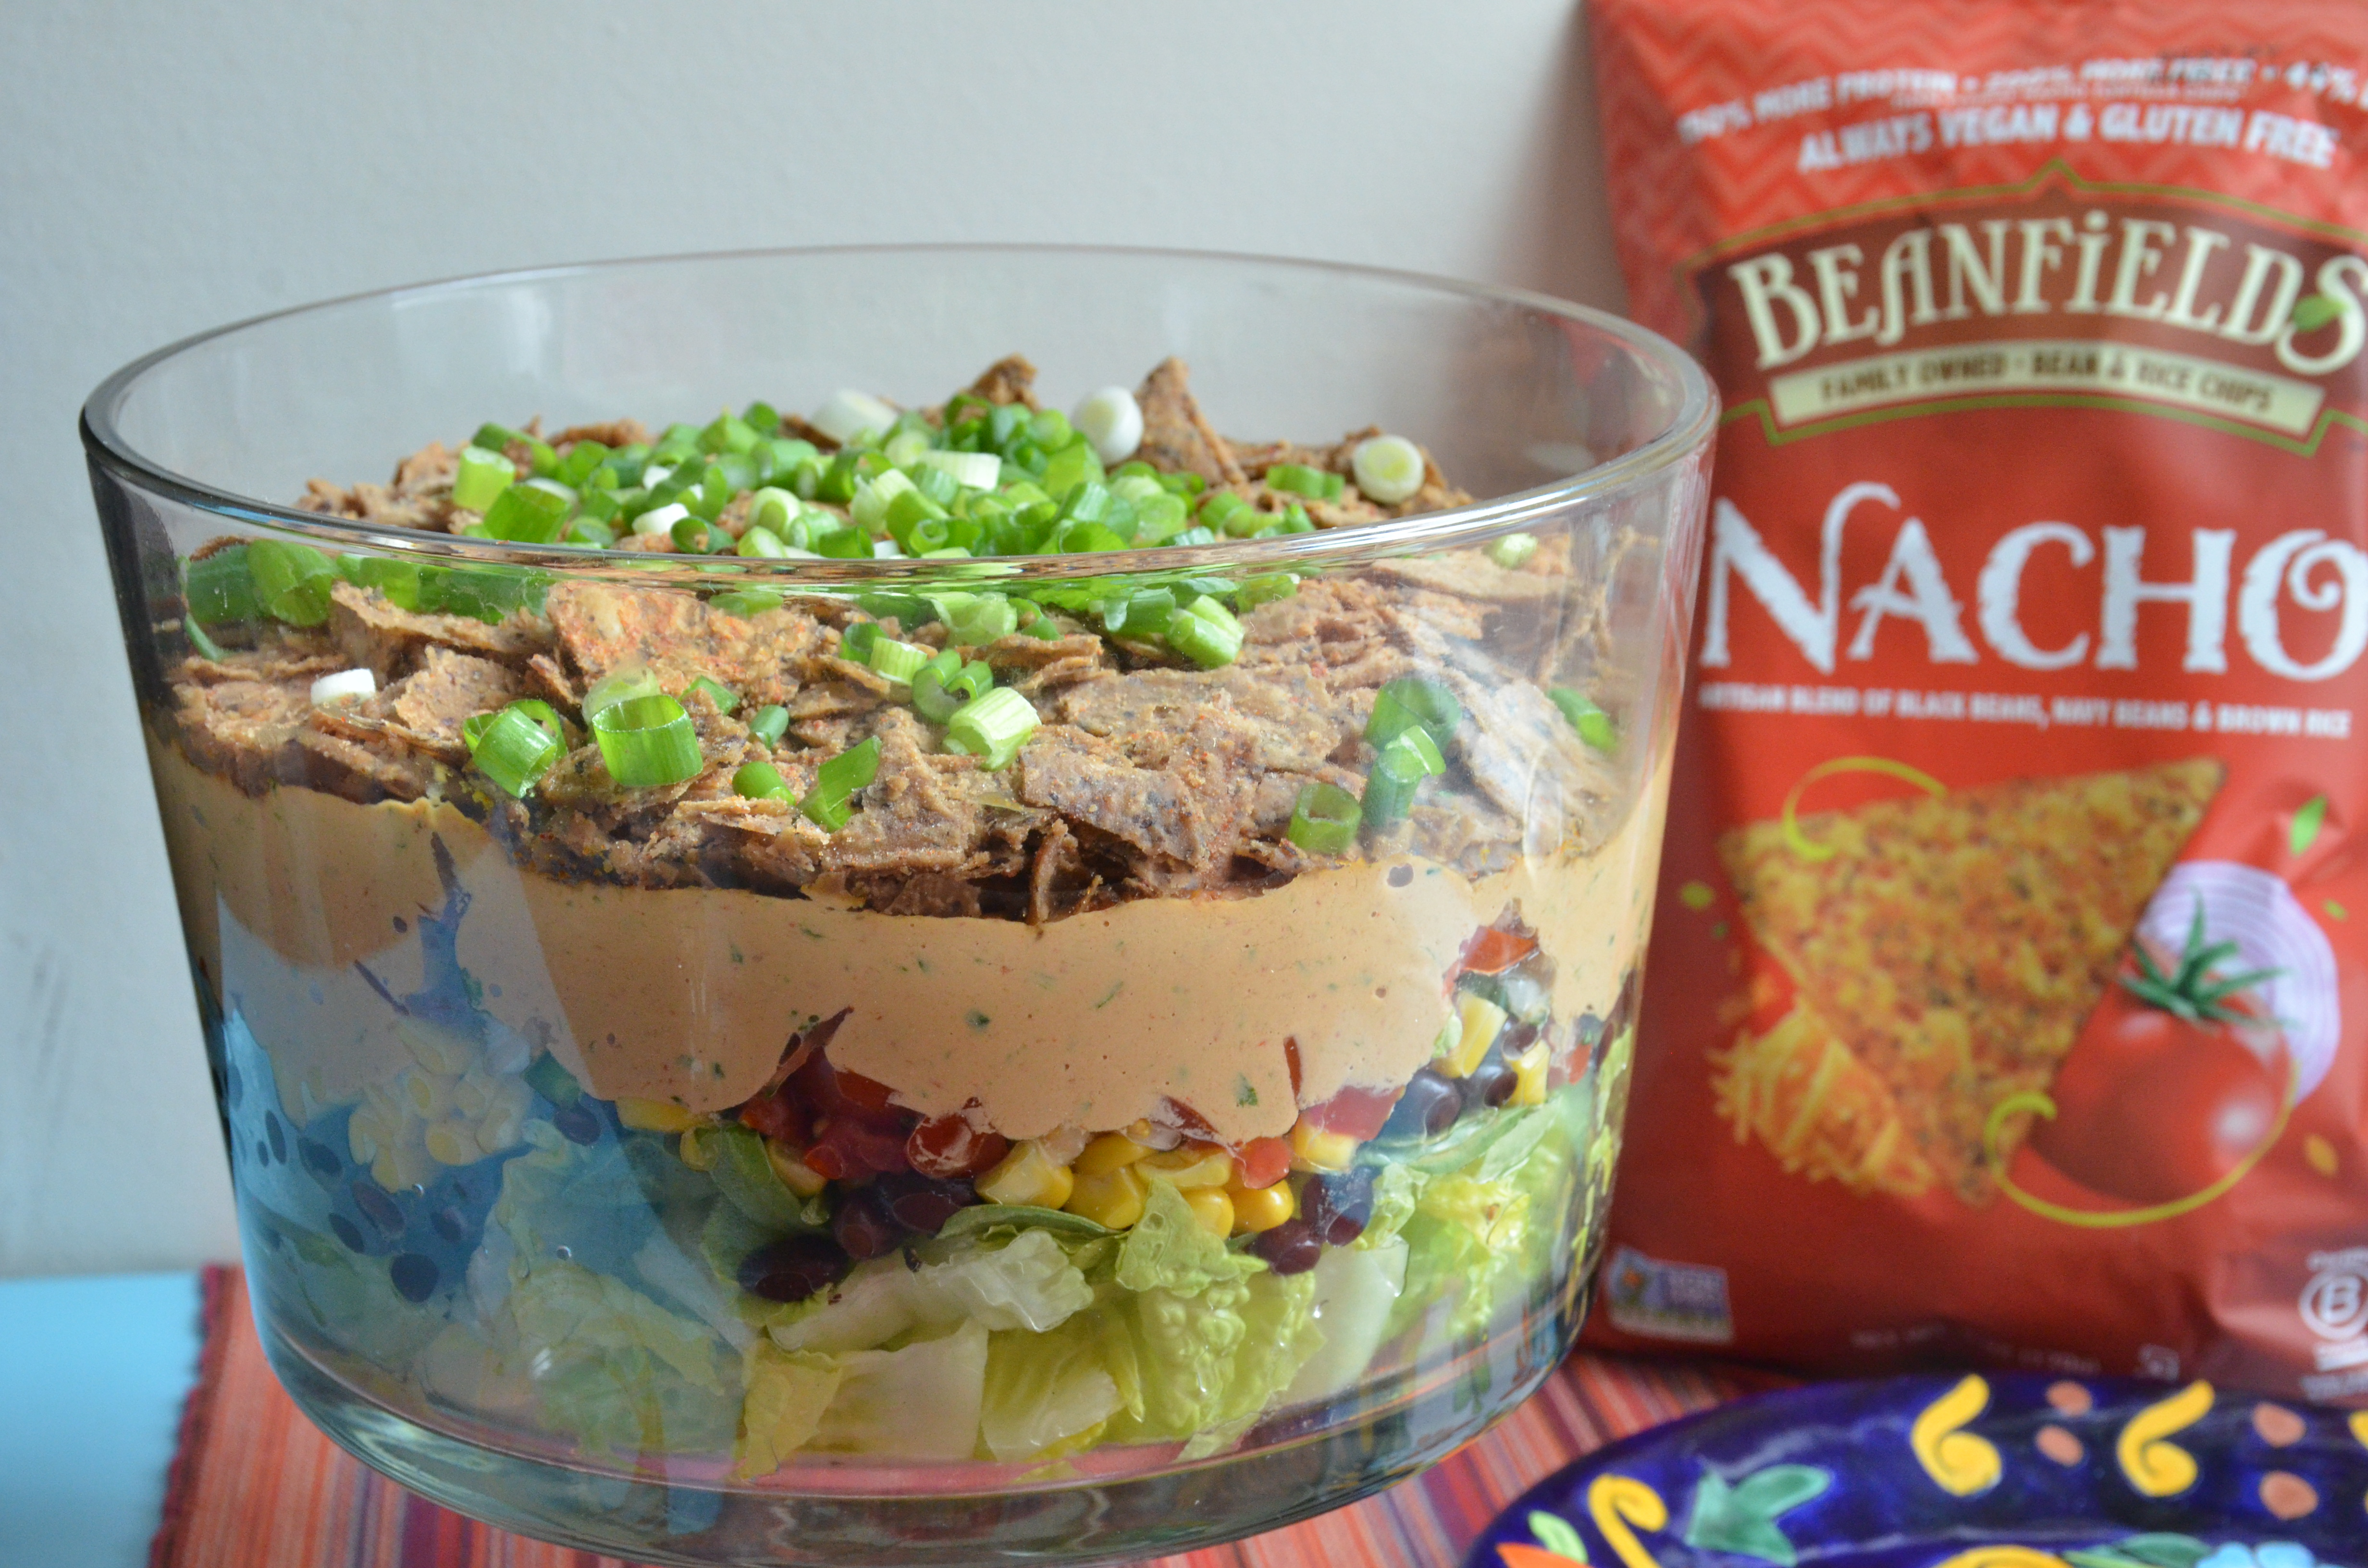 Layered Taco Salad Featuring Beanfields Nacho Chips